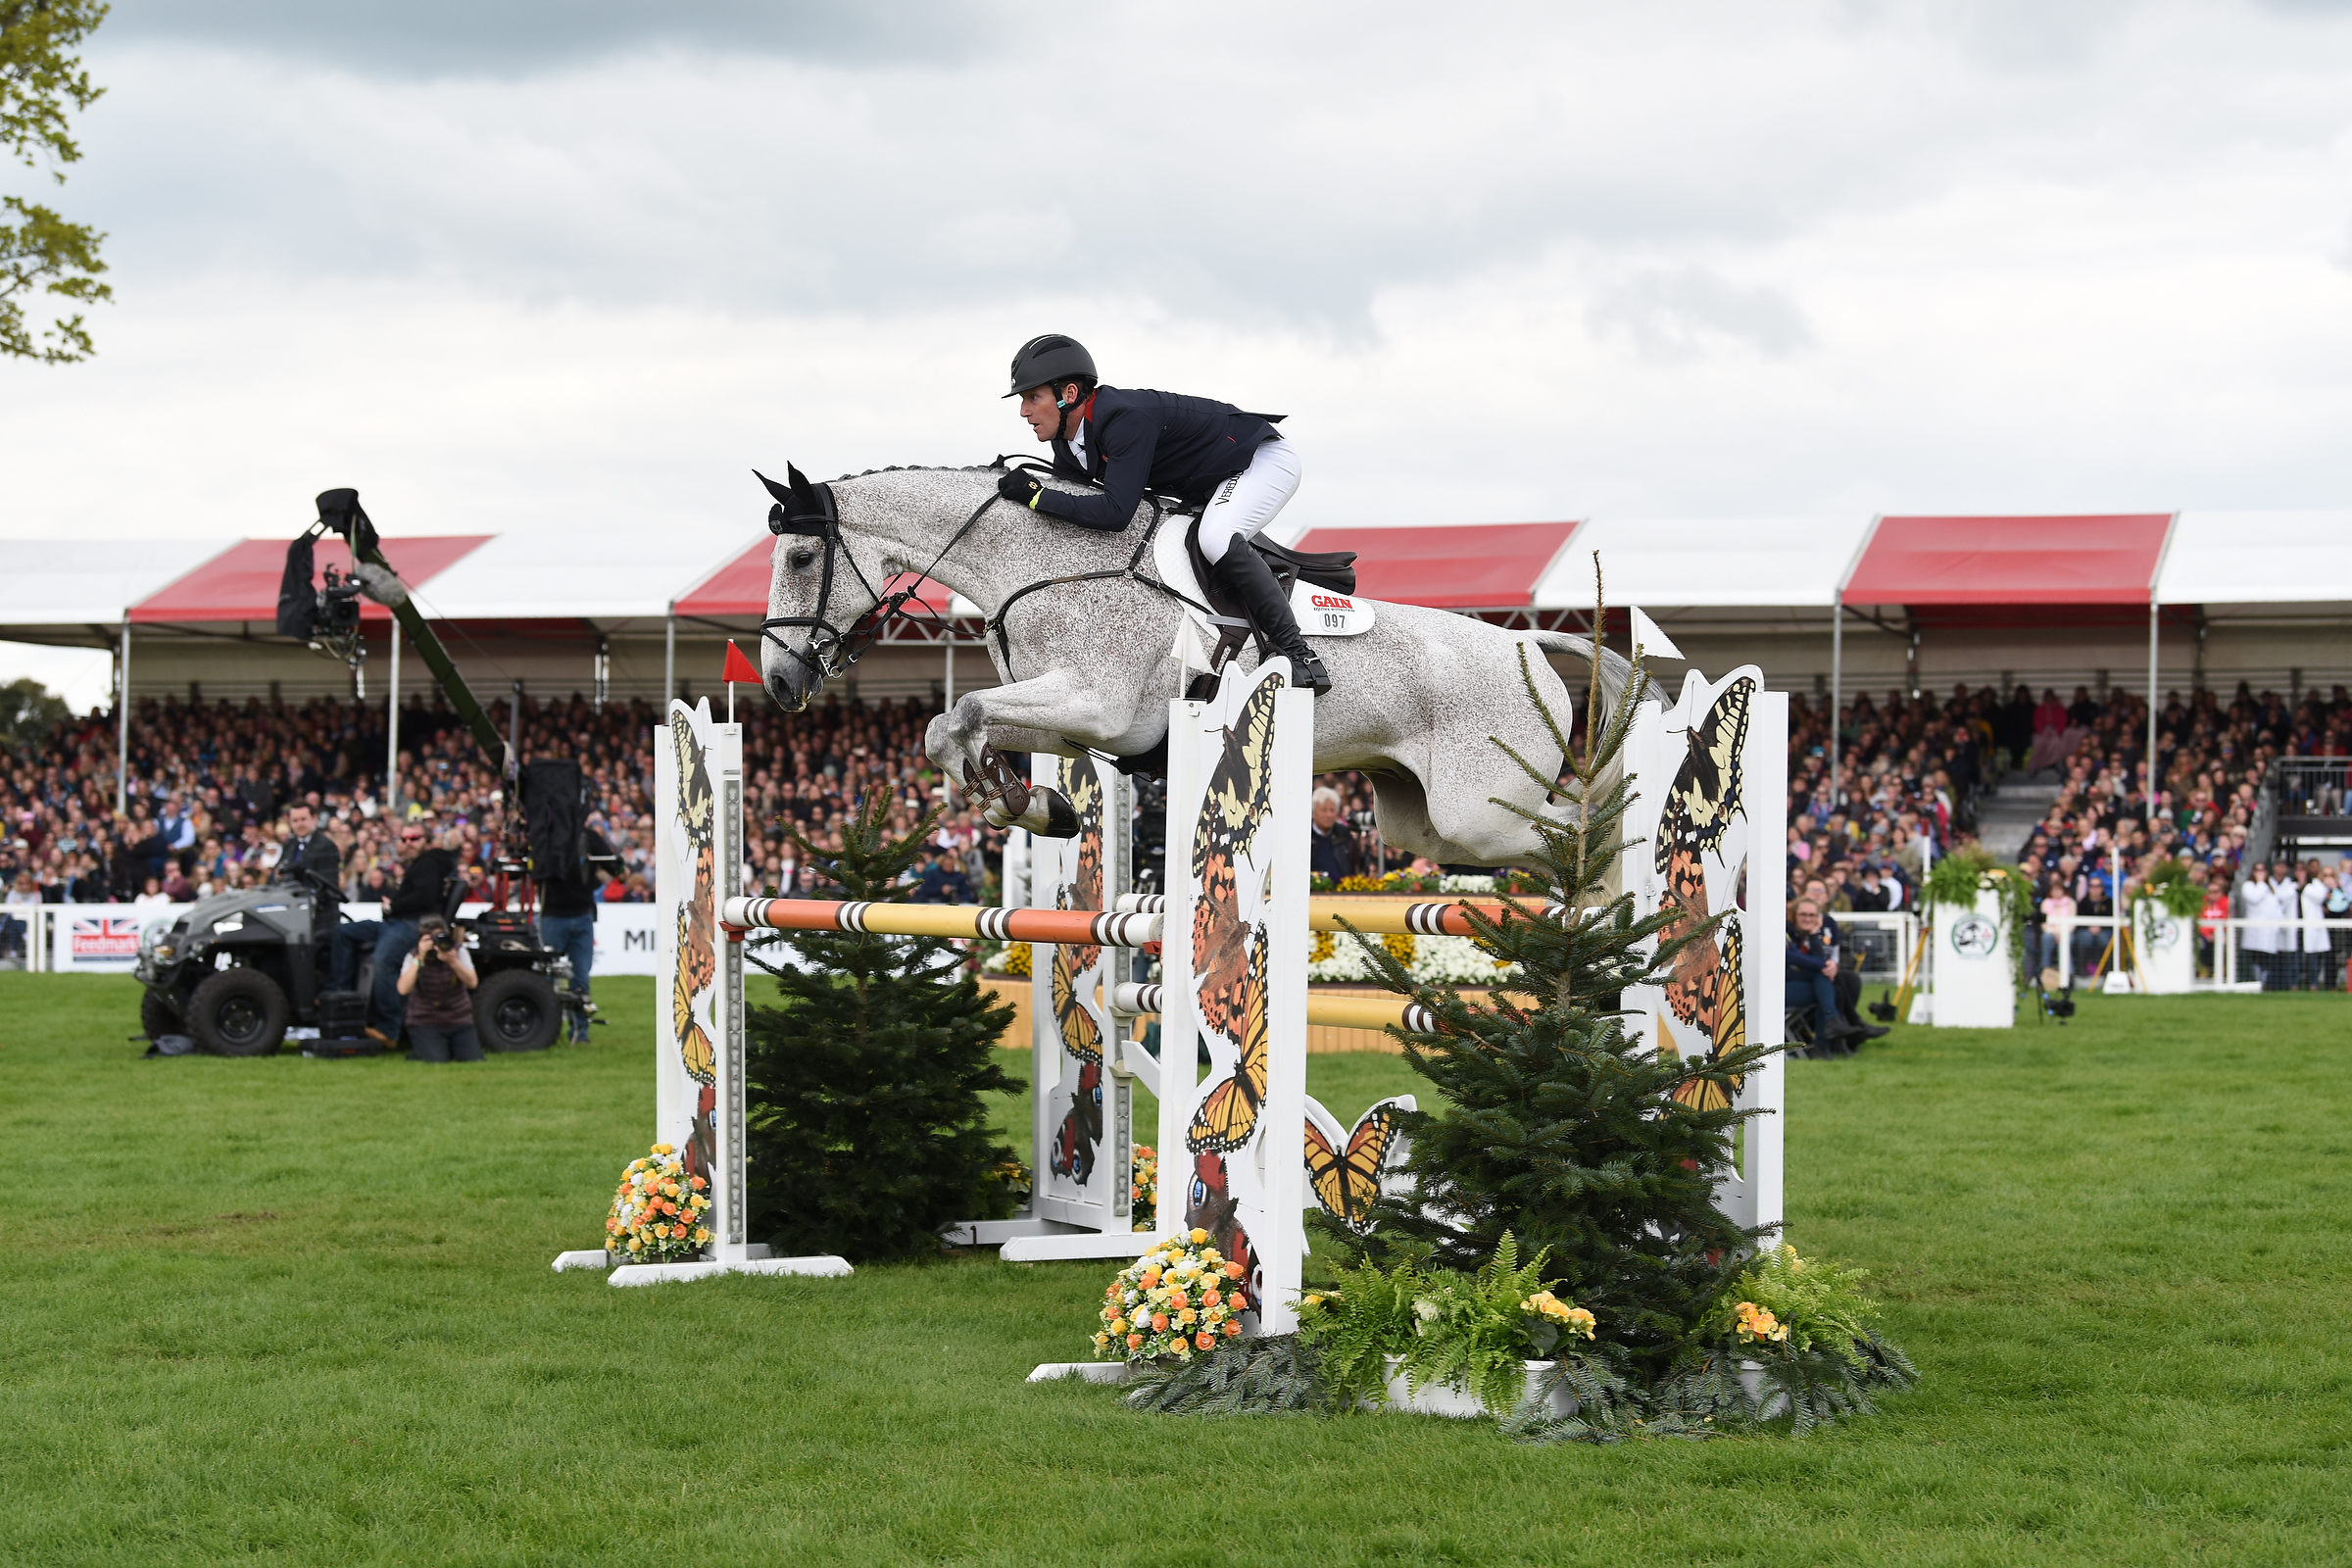 2, Ballaghmor Class - Oliver Townend GBR (27.1pens)